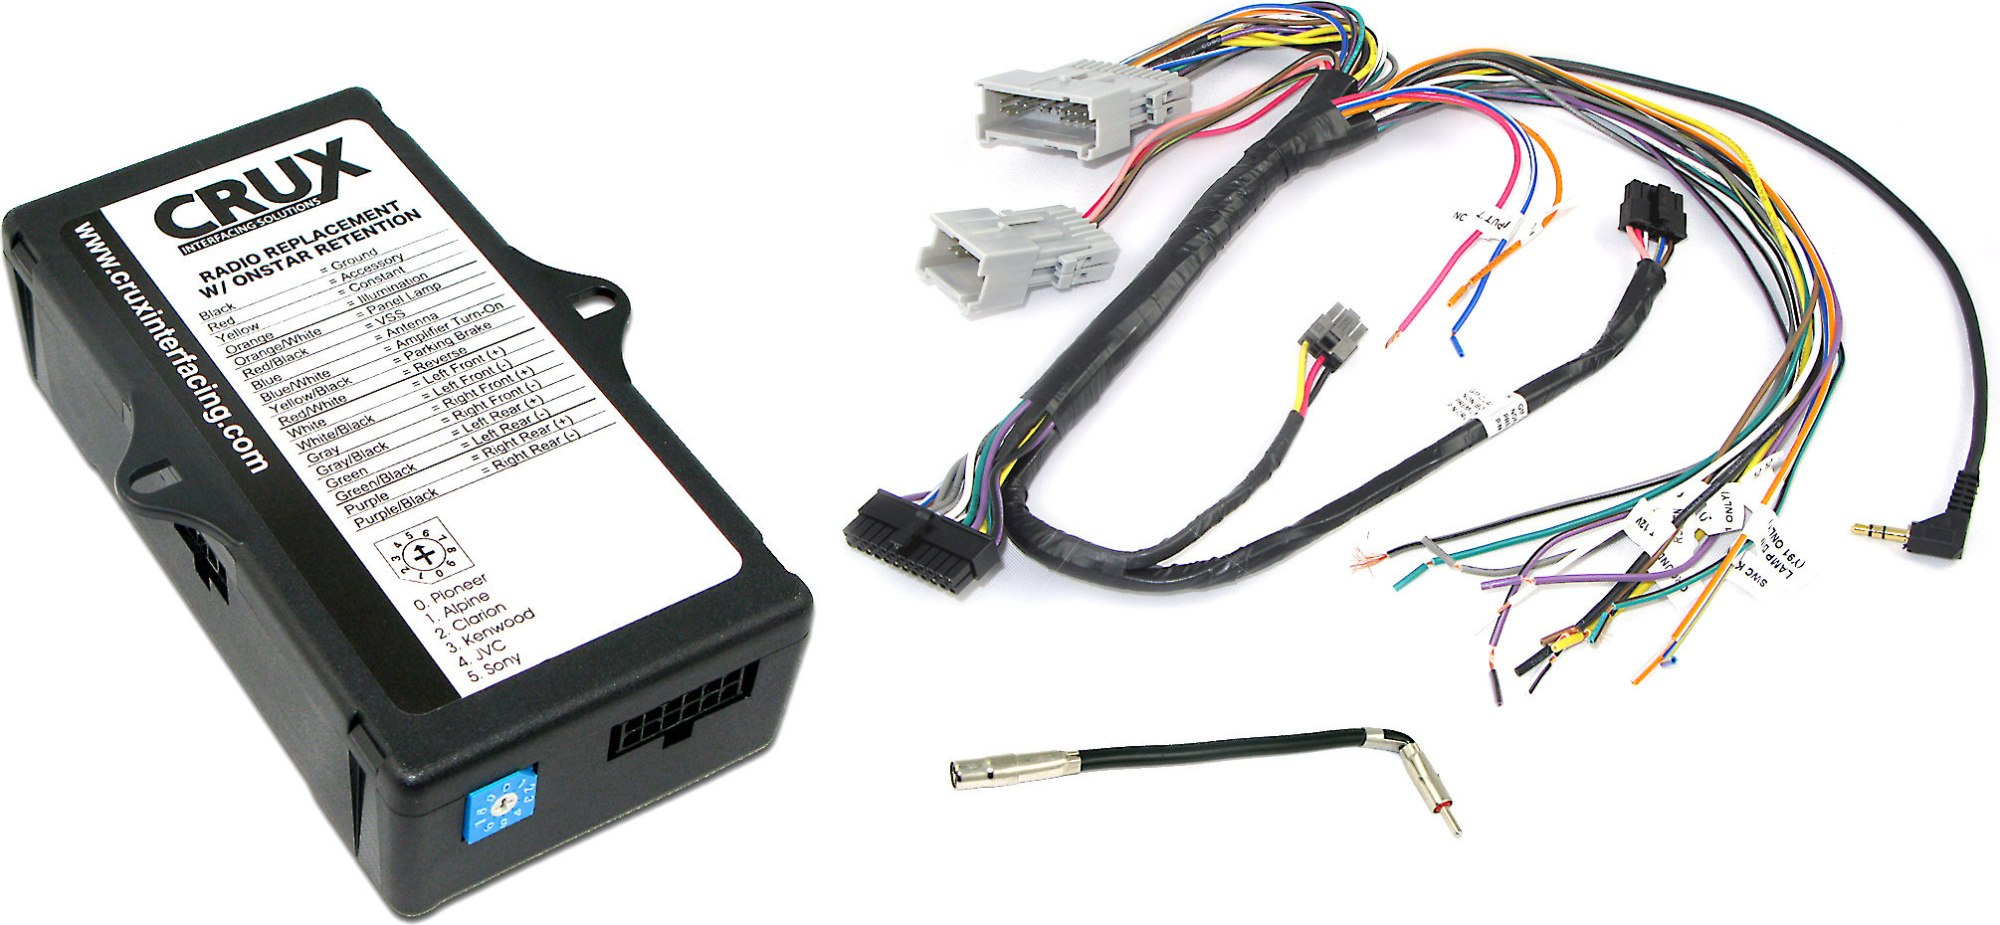 hight resolution of crux soogm 15 gm wiring interface connect a new stereo and retain onstar warning chimes factory amp and steering wheel controls in select 2000 up gm